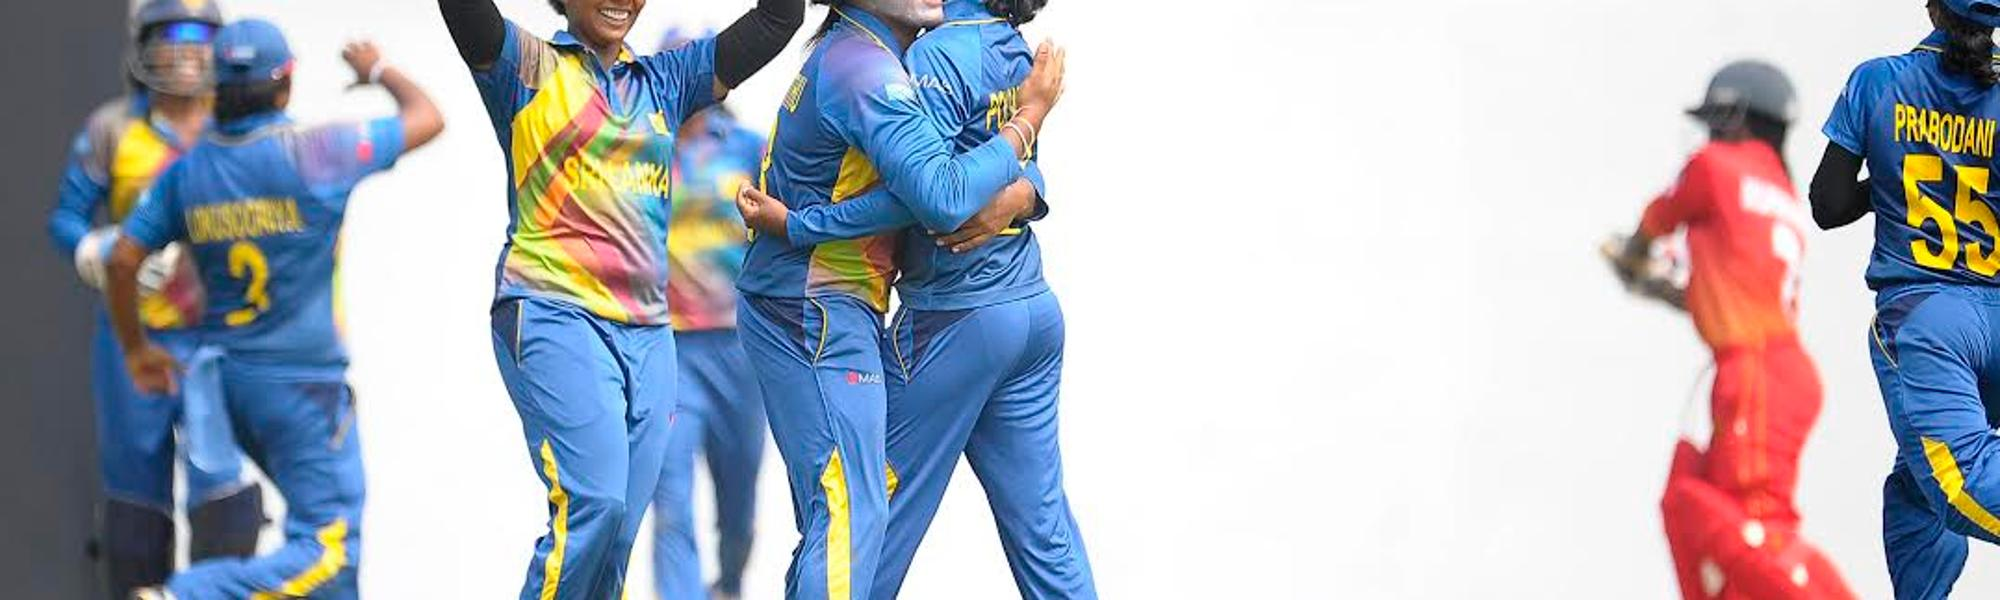 Srilanka's Chamari Polgampola celebrates after taking the wicket of Zimbabwes Modester Mupachikwa in their Group A match in the ICC Womens World Cup Qualifiers, Colombo Sri Lanka. 11th February